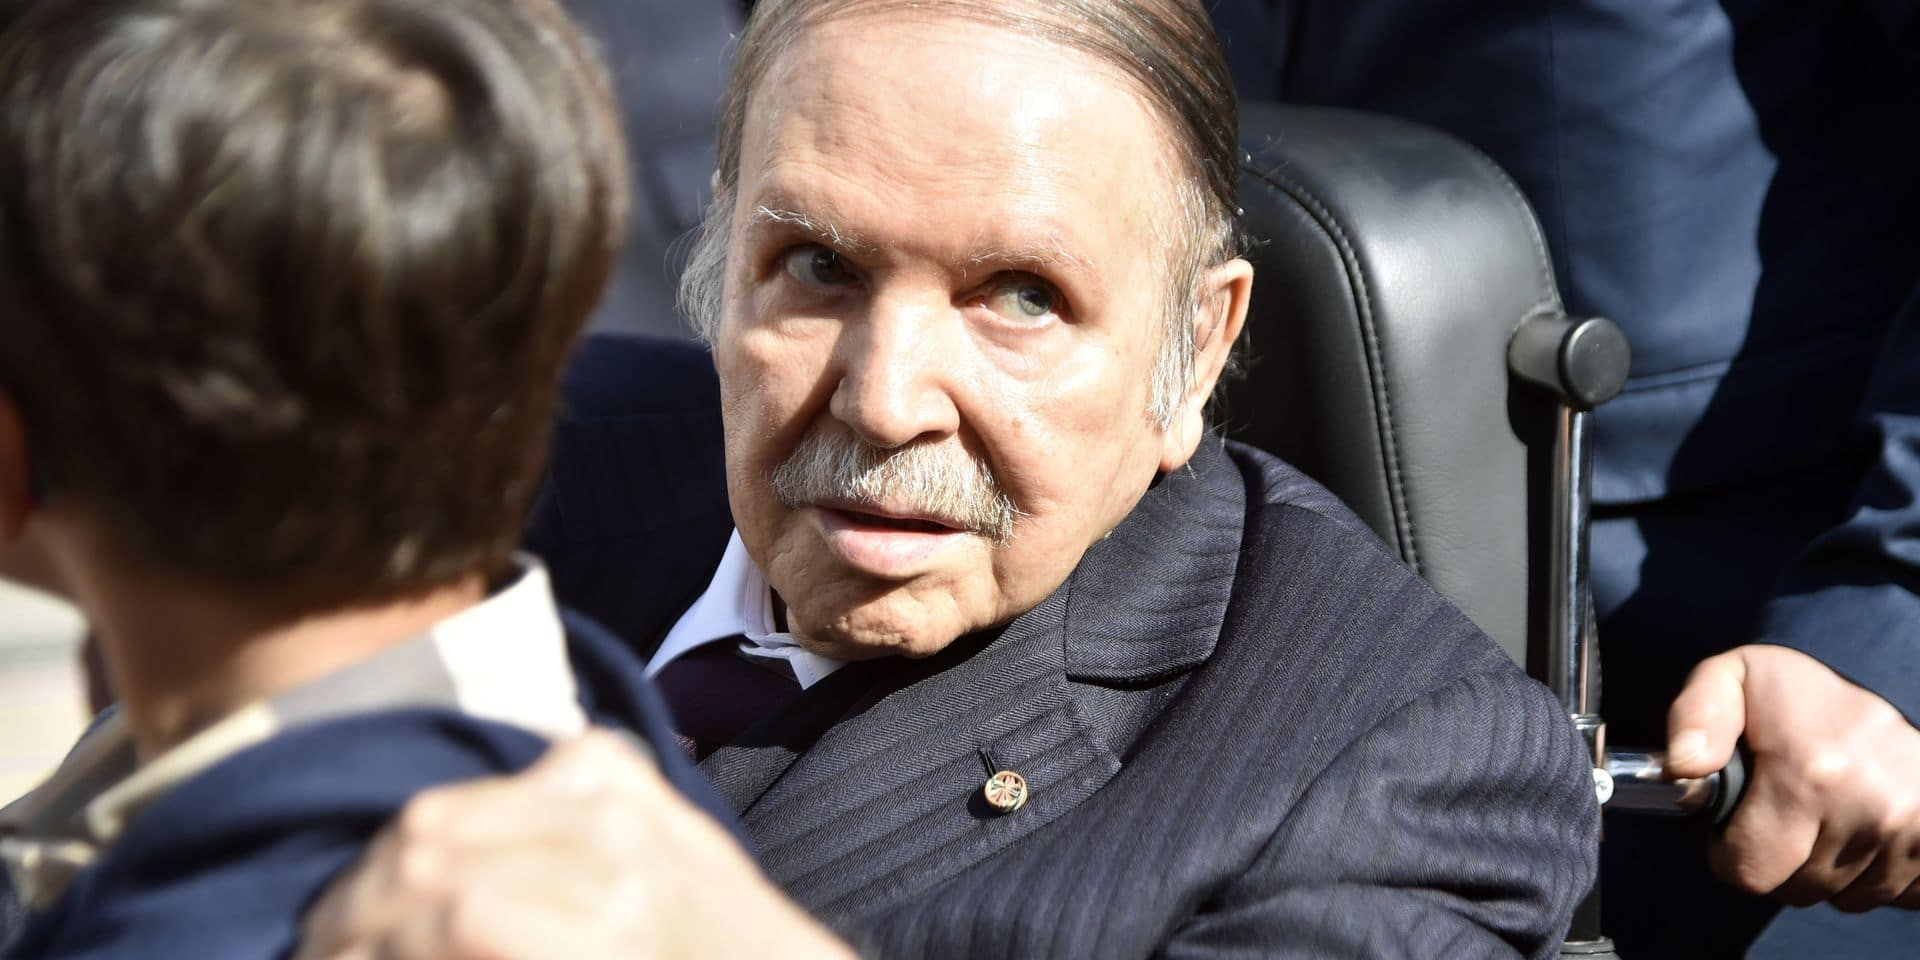 (FILES) In this file photo taken on November 23, 2017, Algerian President Abdelaziz Bouteflika is seen while voting at a polling station in the capital Algiers during polls for local elections. - Algeria's ailing President Abdelaziz Bouteflika will seek a fifth term in April elections, the country's official APS news agency said on February 10. The 81-year-old head of state, in power since 1999, announced his candidacy in a message to the nation sent to the agency, said APS, which will release it later in the day. (Photo by RYAD KRAMDI / AFP)